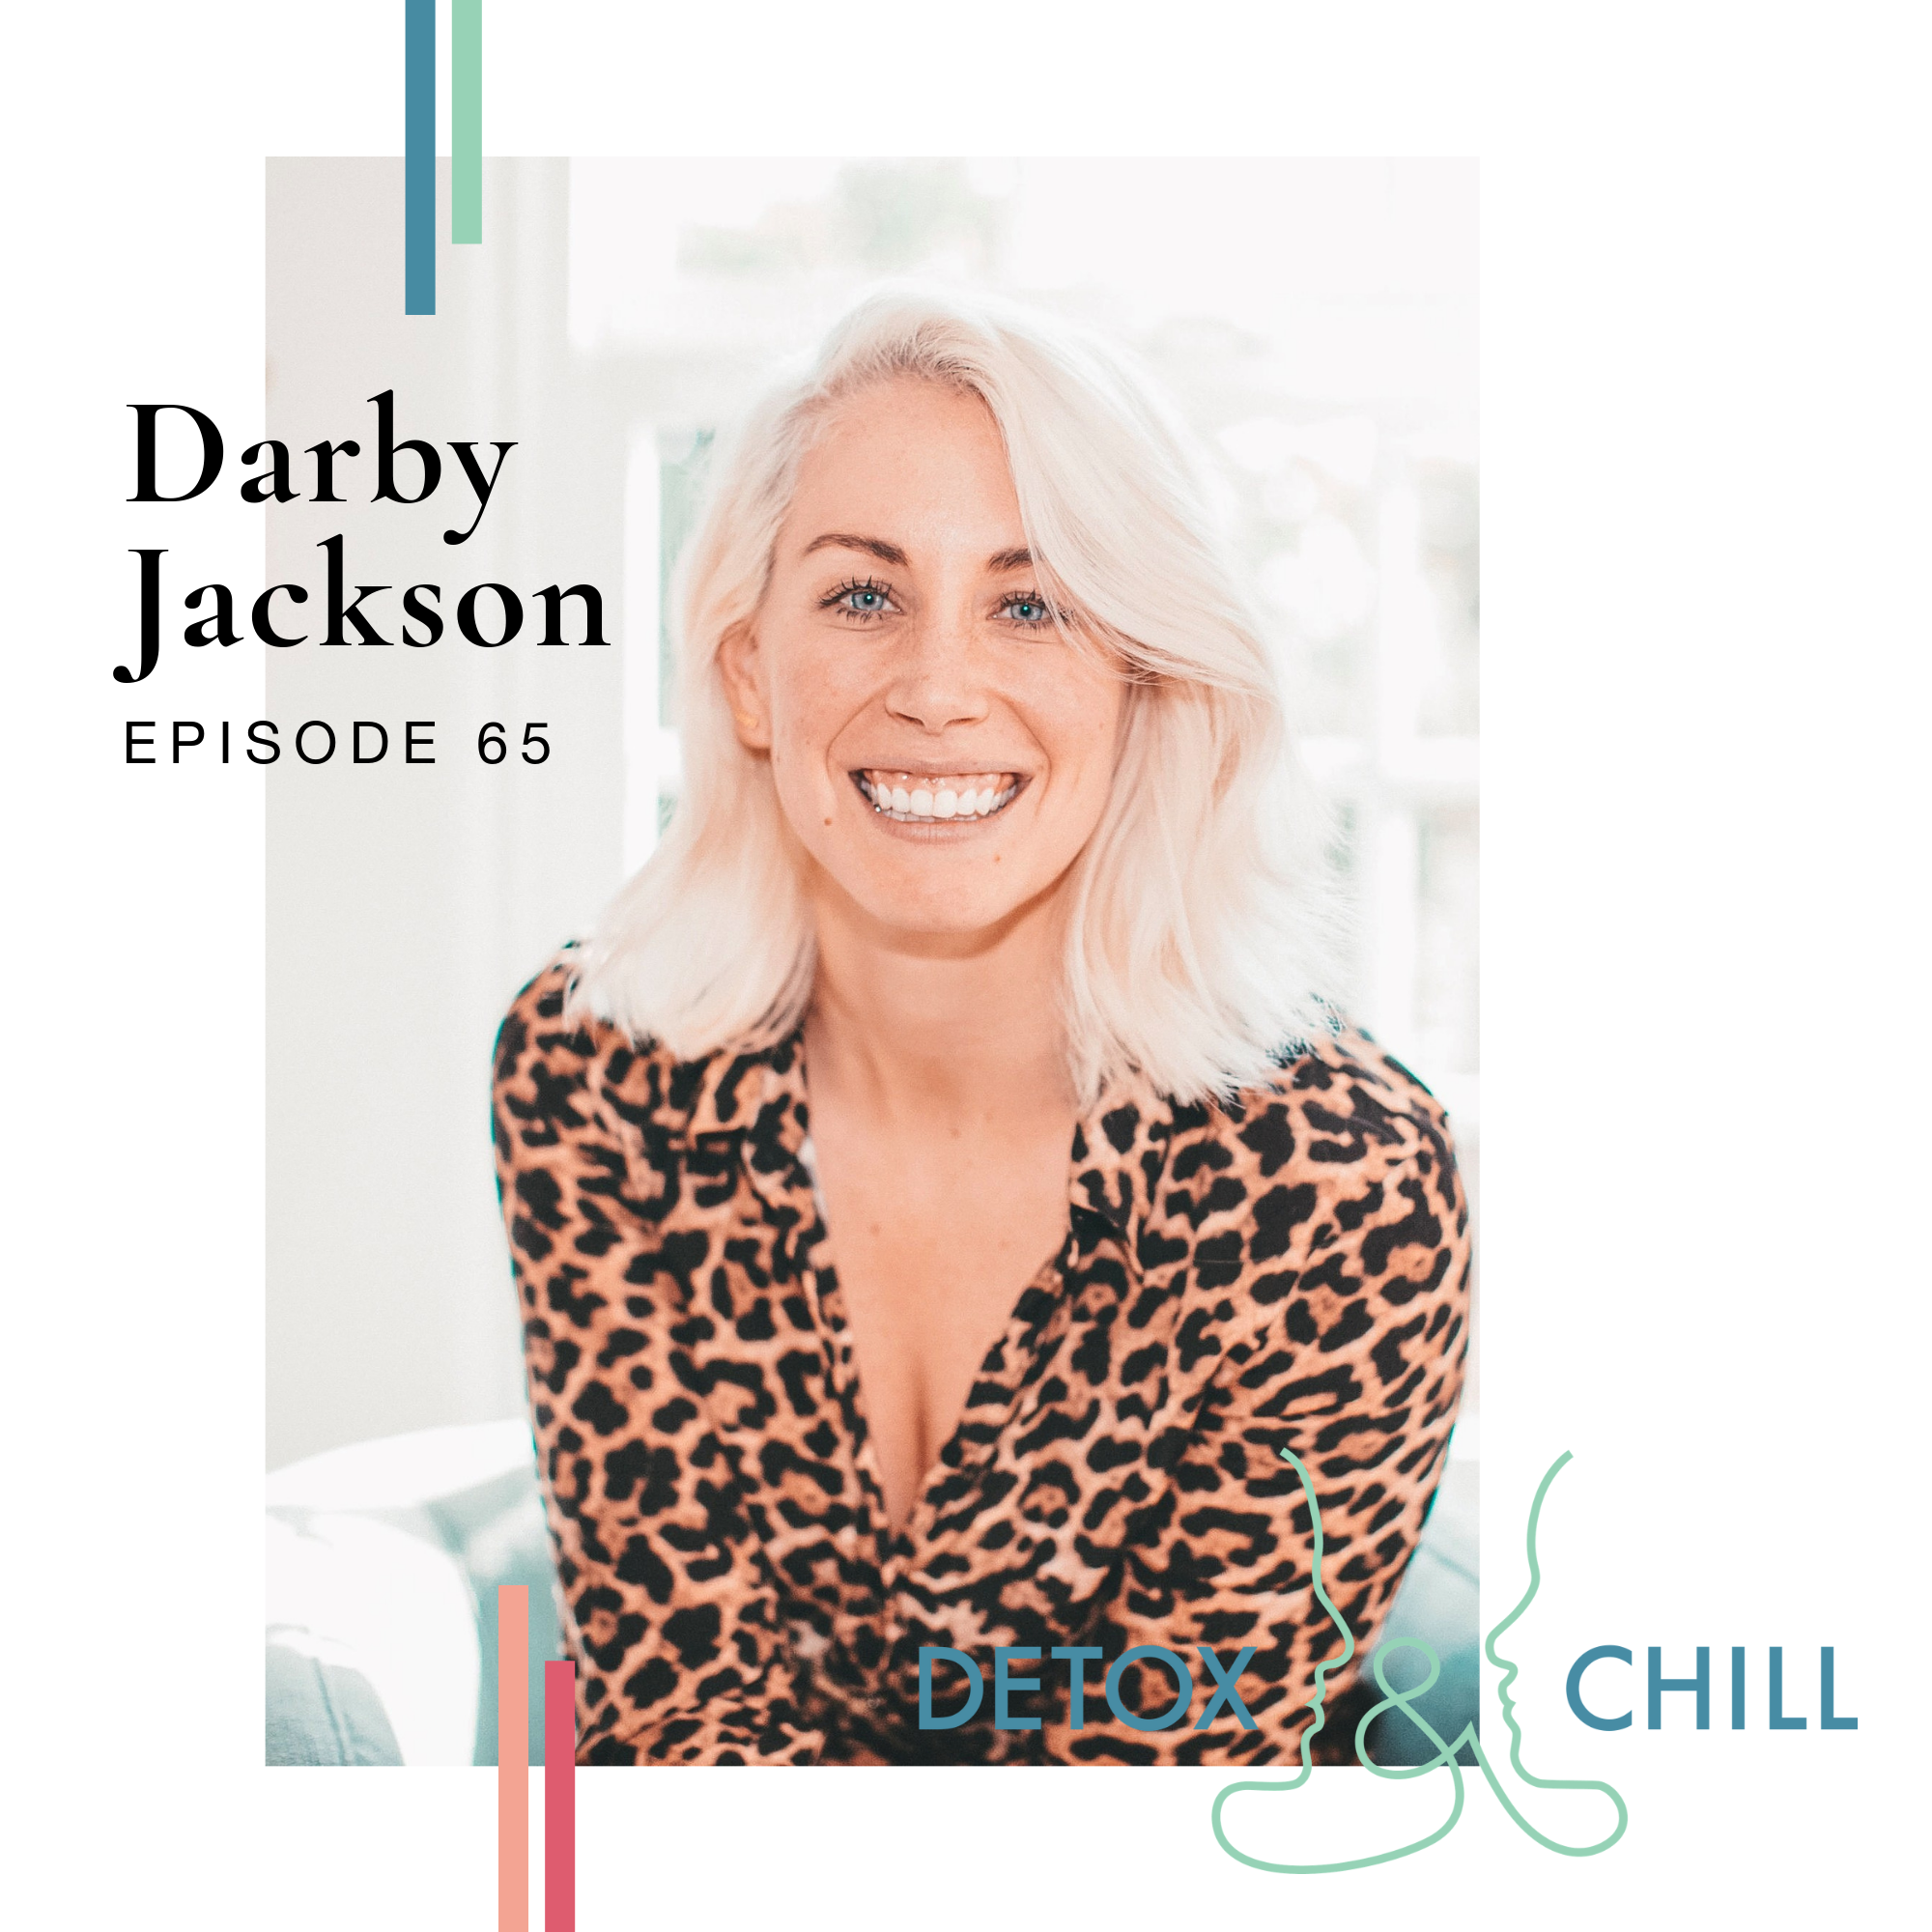 Episode #65: Darby Jackson // Co-Founder of Après & Protein Sommelier // Repairing Your Body Image with Food and Mindset - WE ARE SO PUMPED for this week's episode!If you're like us (well, Meg specifically), you struggle to find a post-workout drink that provides some protein for recovery, but isn't hard on your stomach. Enter: Après - a post-workout bev that we can truly get behind.This week, we have the founder, Darby Jackson on the podcast. Well before Après was founded, Darby was diagnosed with celiac disease which inspired her to become an Integrative Nutrition Health Coach and personal trainer, combining her passion for nourishing food with her background in sports. Through her work with women in her coaching business, she began to notice that there wasn't a post-workout drink that she would actually recommend to her clients.Enter: Après. Founded by Darby and her partner Sonny, Après is recovery drink with plant protein, coconut oil, and coconut water. In this episode, we talk to Darby about…- How she became interested in wellness after transitioning from playing water polo and started her coaching business;- How she recognized a need in the industry for a recovery drink like Après;- The MANY rounds of product sampling that her and her cofounder, Sonny, went through to arrive at the final blend;- Her morning routine and how it sets the tone for her dayFollow Darby & Après here:IG: https://www.instagram.com/darbyjackson_/IG: https://www.instagram.com/drinkapres/Website: https://drinkapres.comFind US on Instagram @detoxandchillpodcast and our website.Also, don't forgot to rate and review on iTunes, Spotify, or wherever you're listening to this. The reviews mean the world to us and we thank you so much for taking the time to write them!xoxo,Meg & Beck